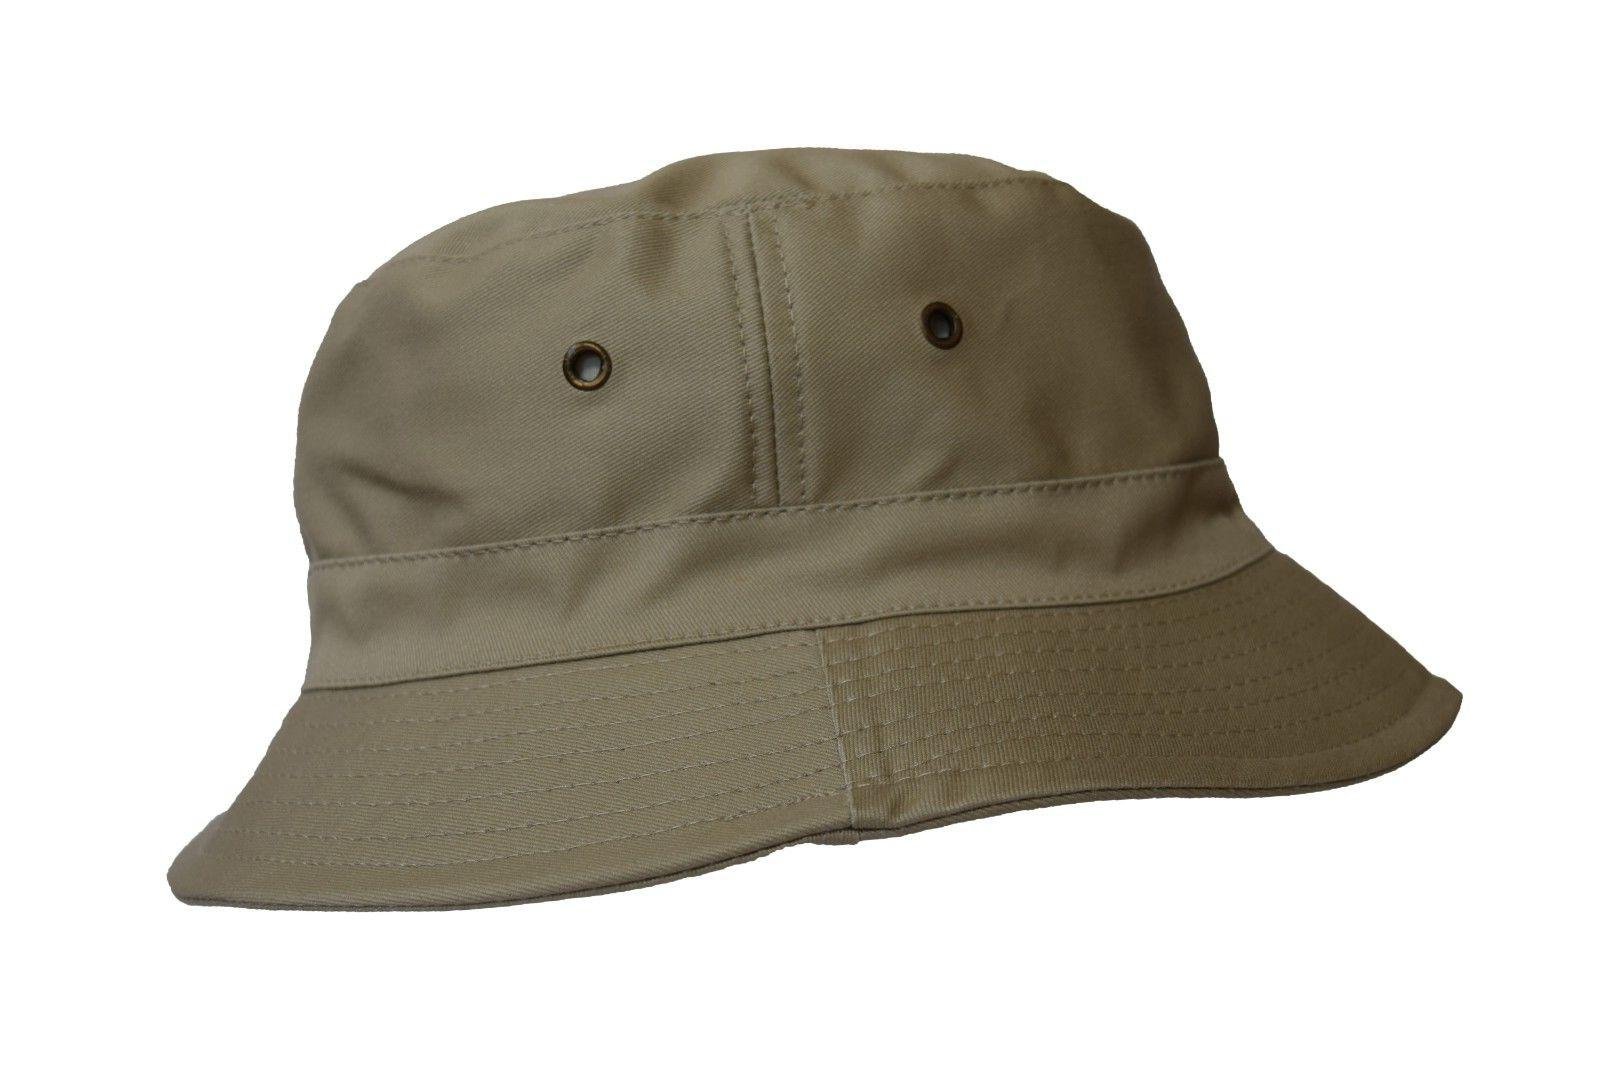 Bucket 2 Boonie Cap Cotton Hunting women